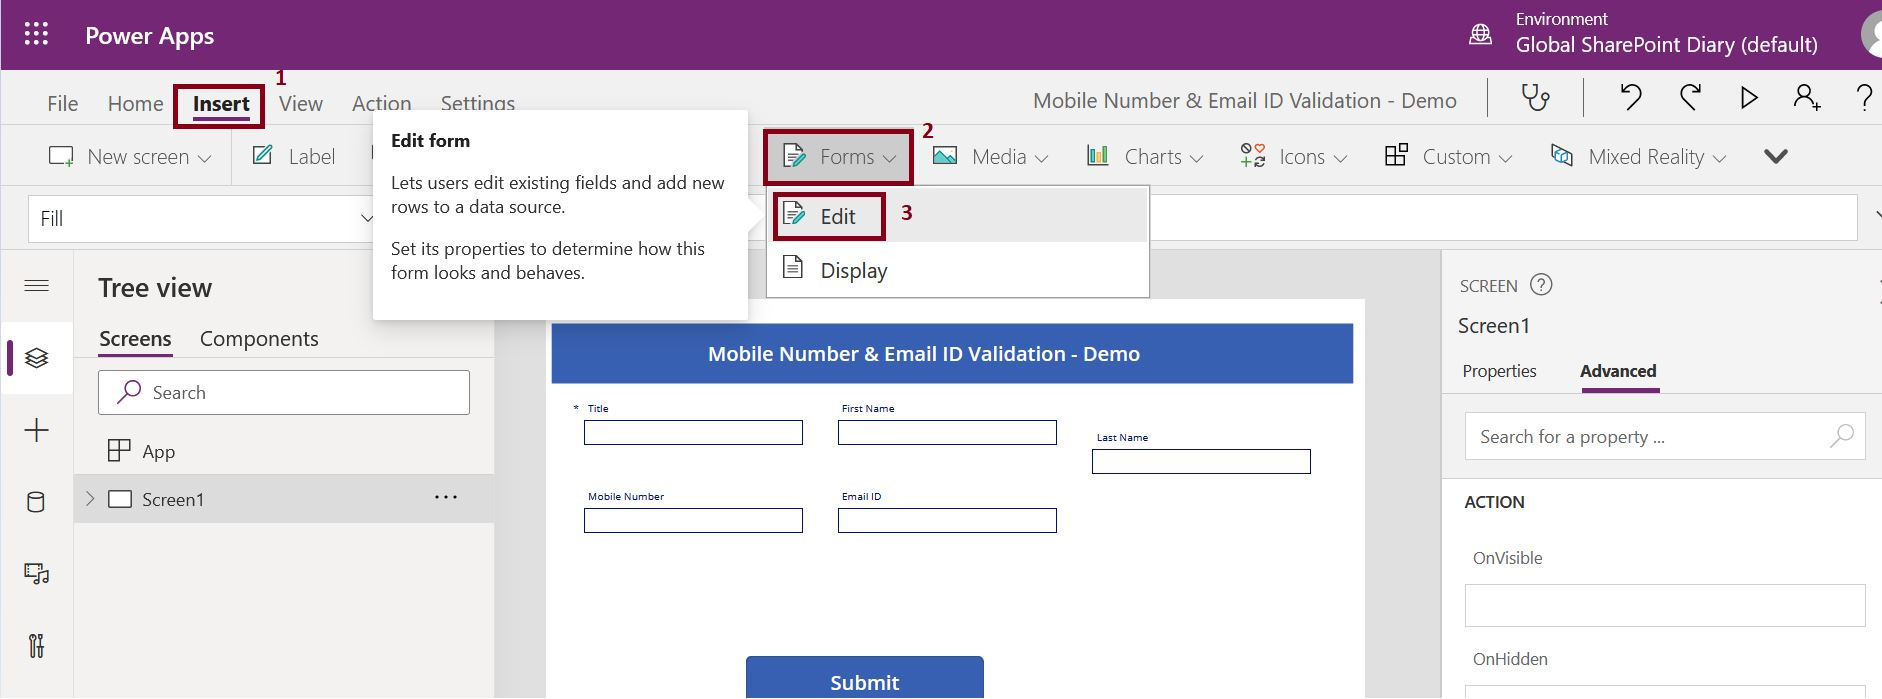 How to add form control in PowerApps Canvas App?